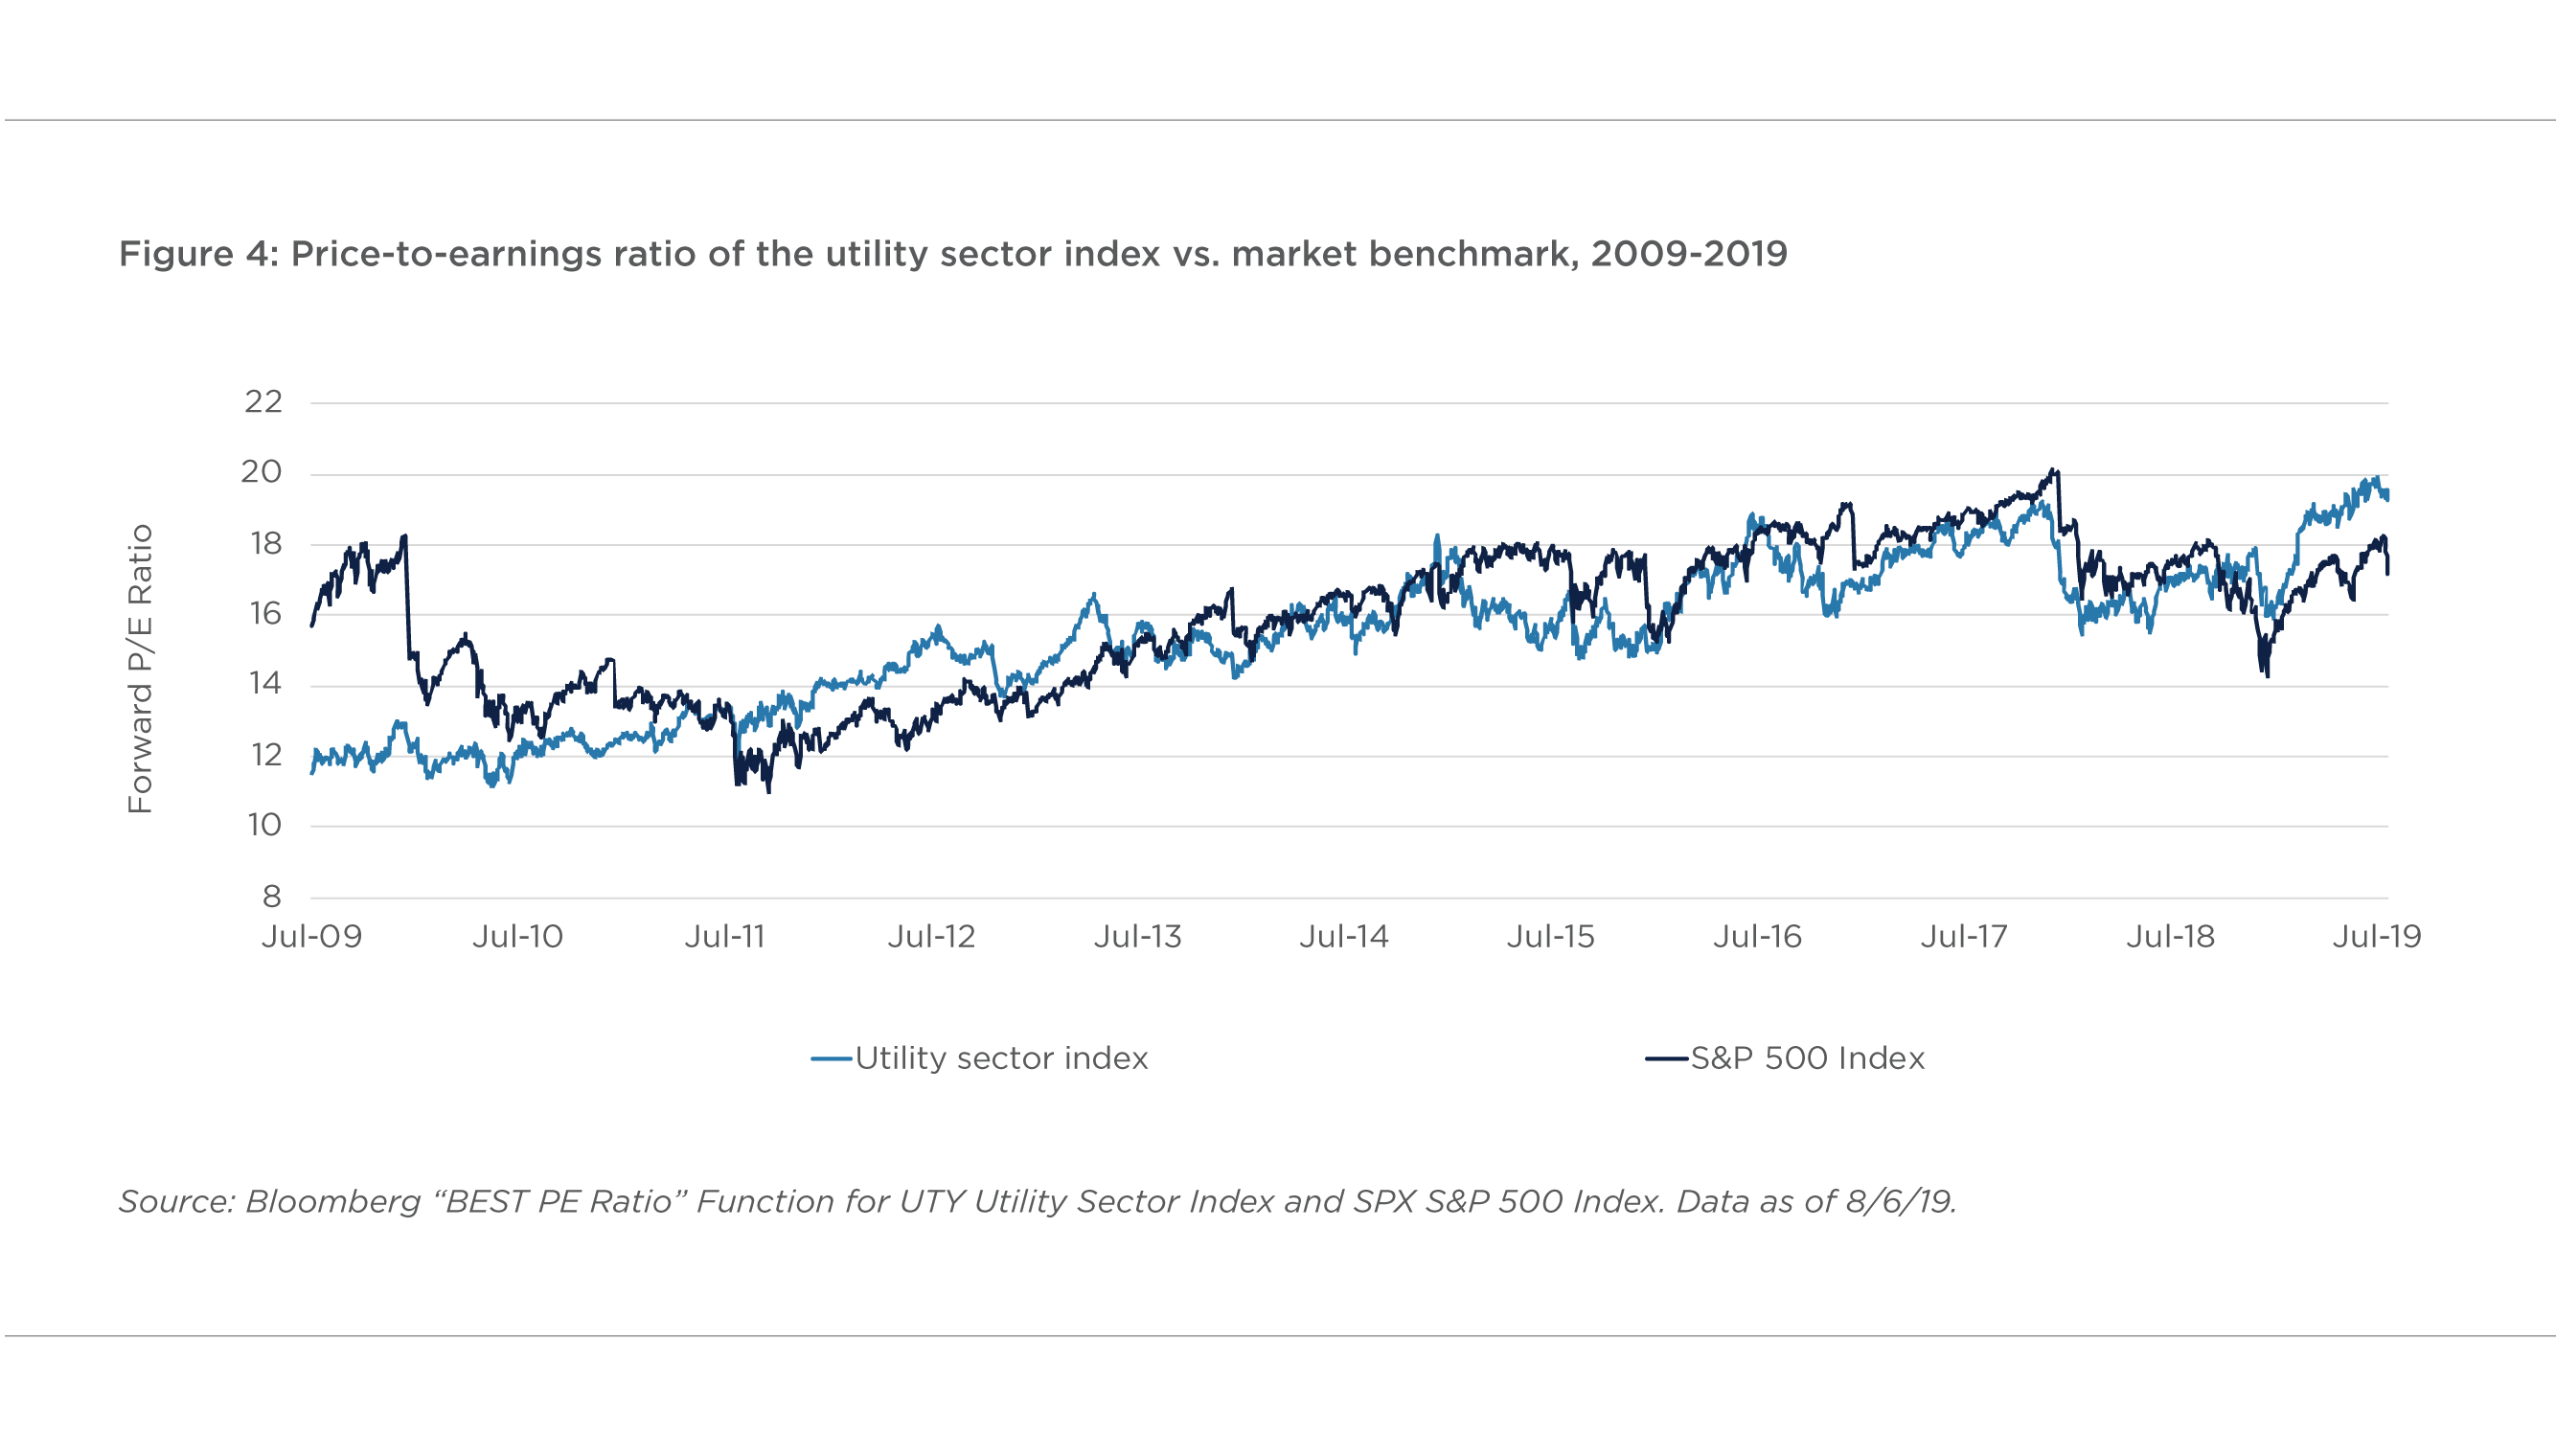 FIGURE 4. PRICE-TO-EARNINGS RATIO OF THE UTILITY SECTOR INDEX VERSUS MARKET BENCHMARK, 2009–2019